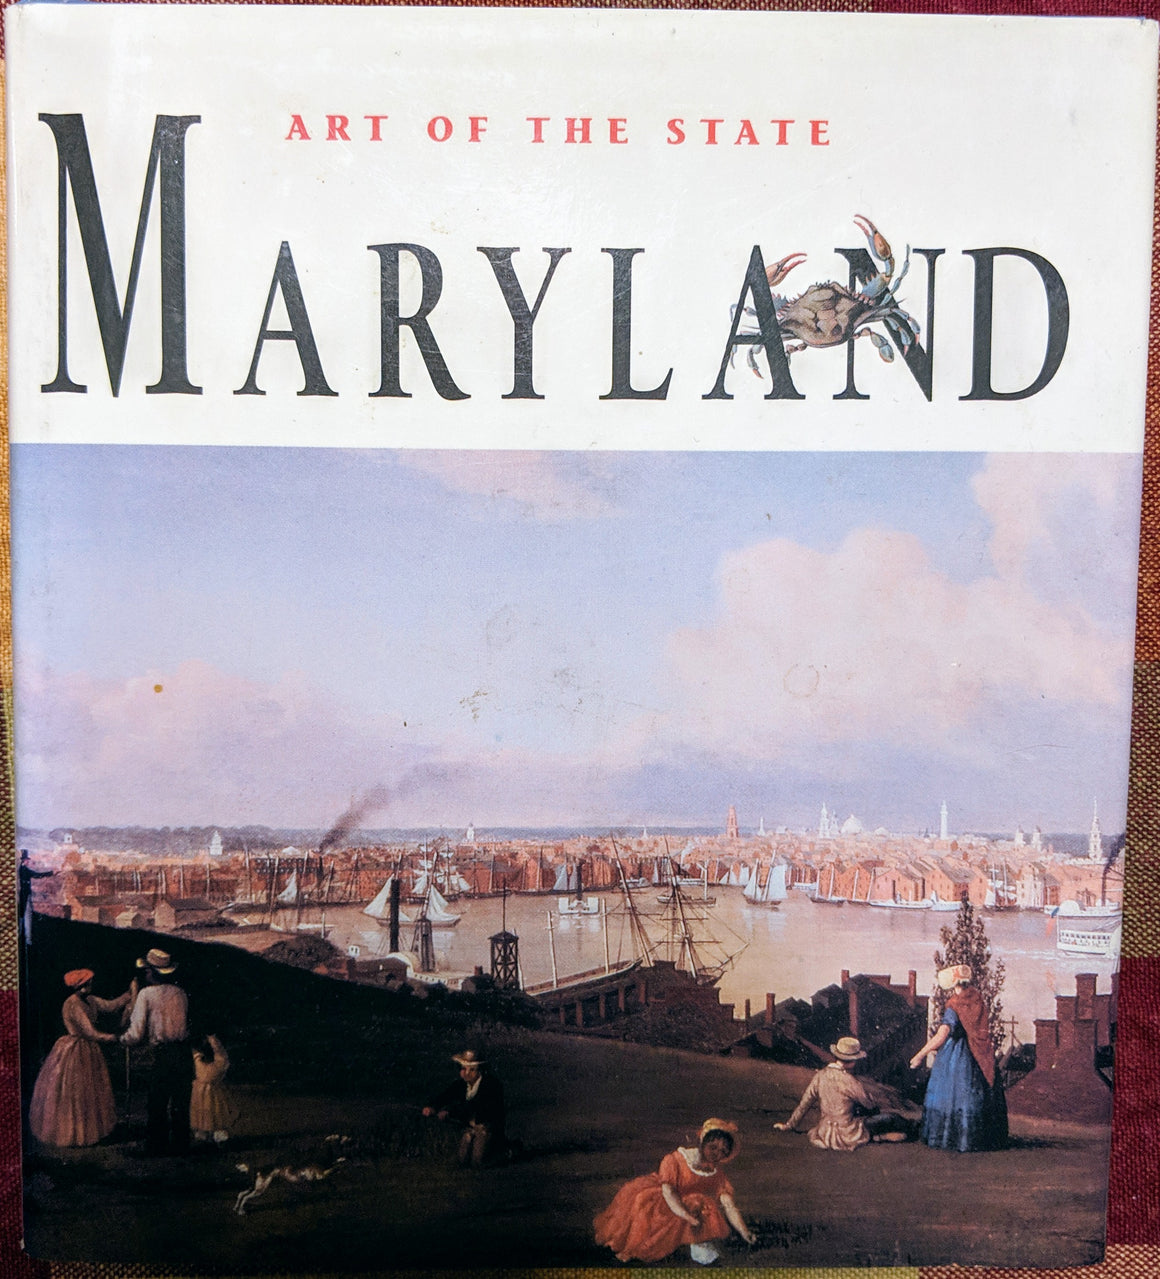 Book - Art of the State Maryland